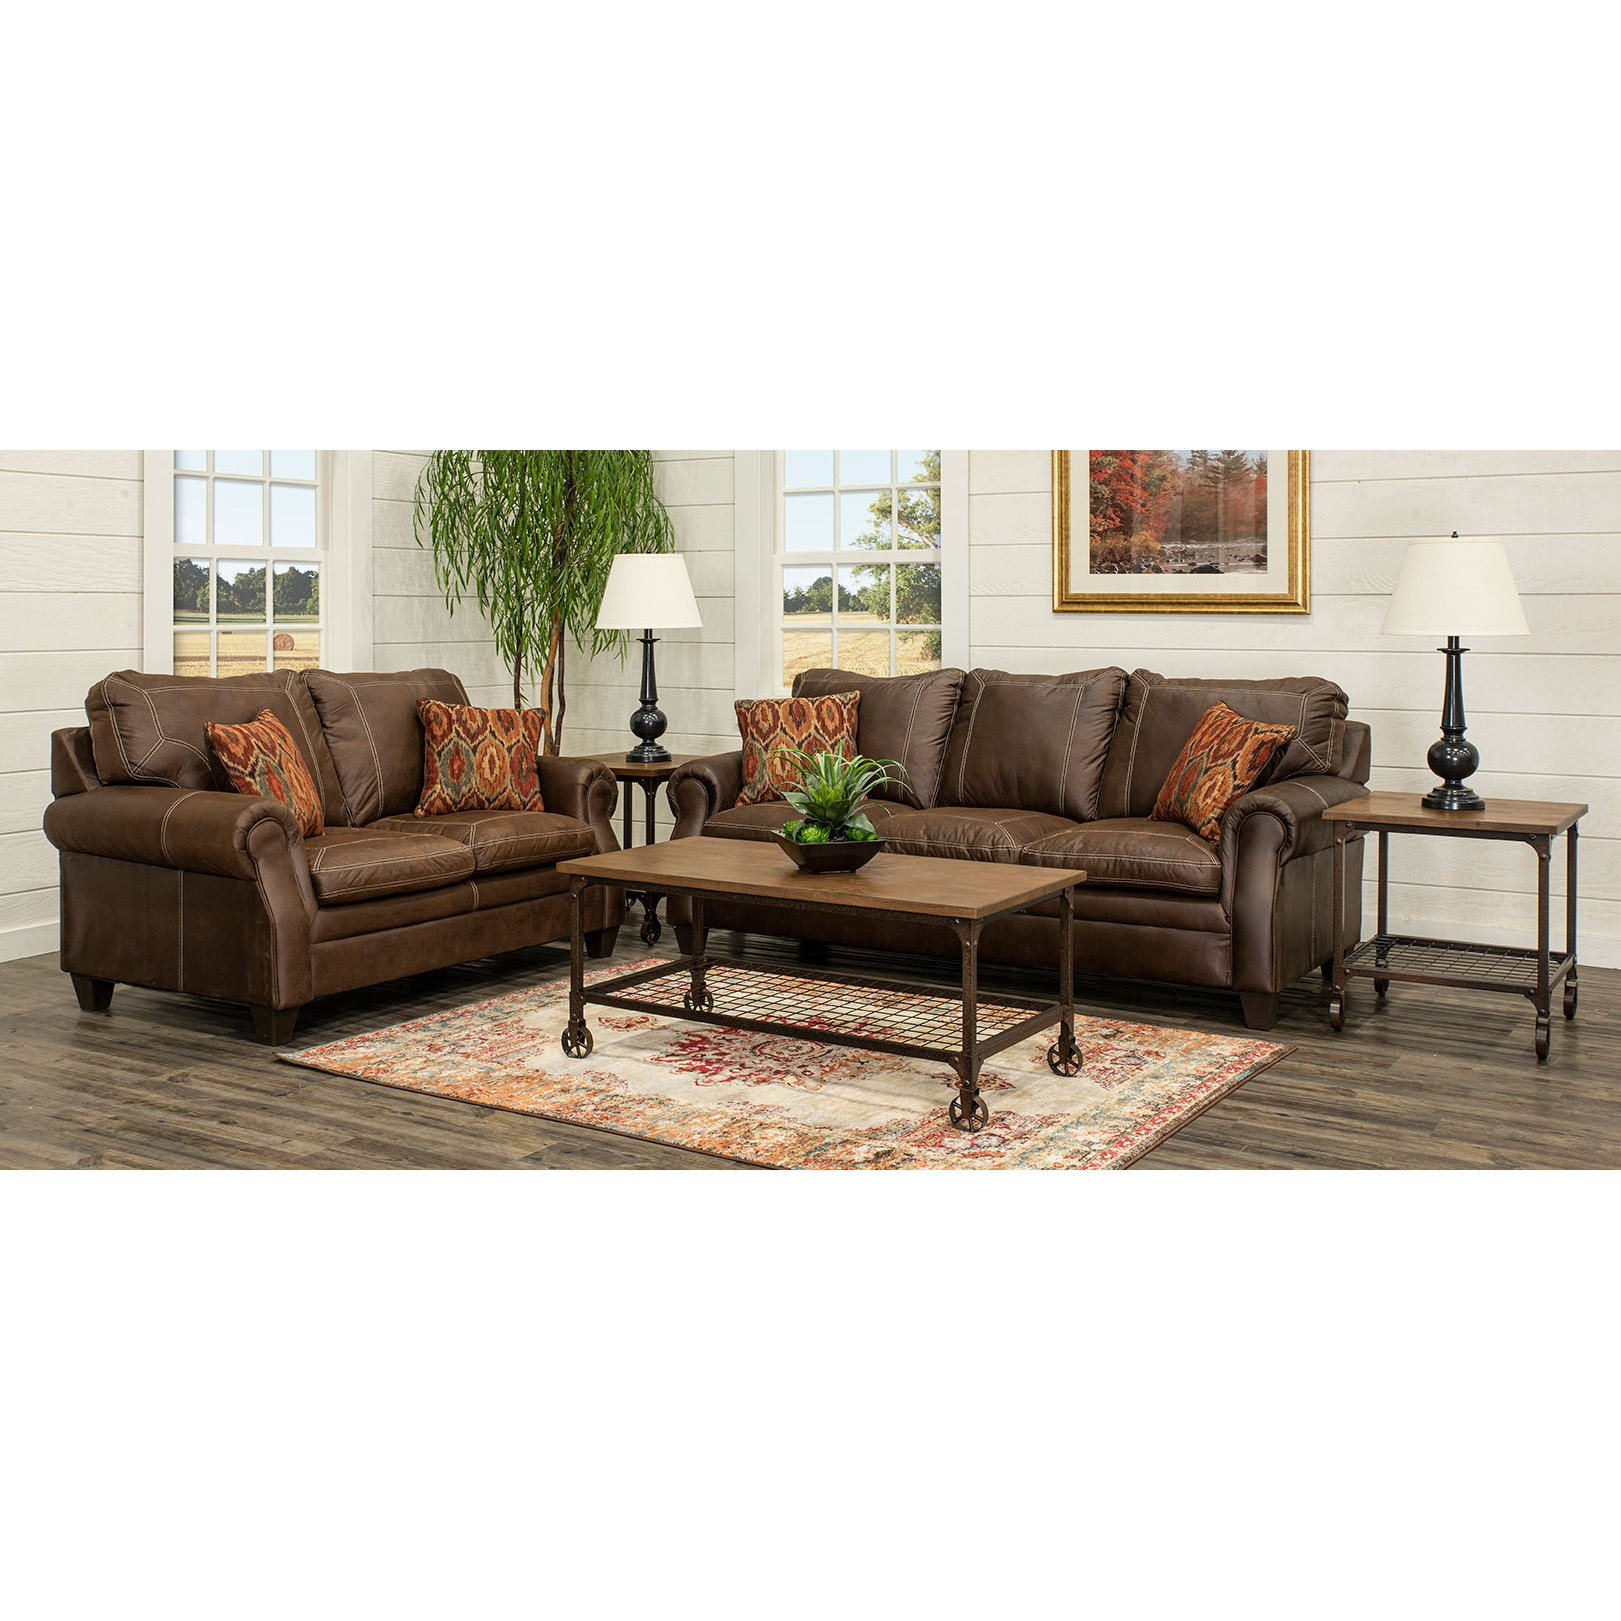 Buy living room furniture couches sectionals & tables Page 2